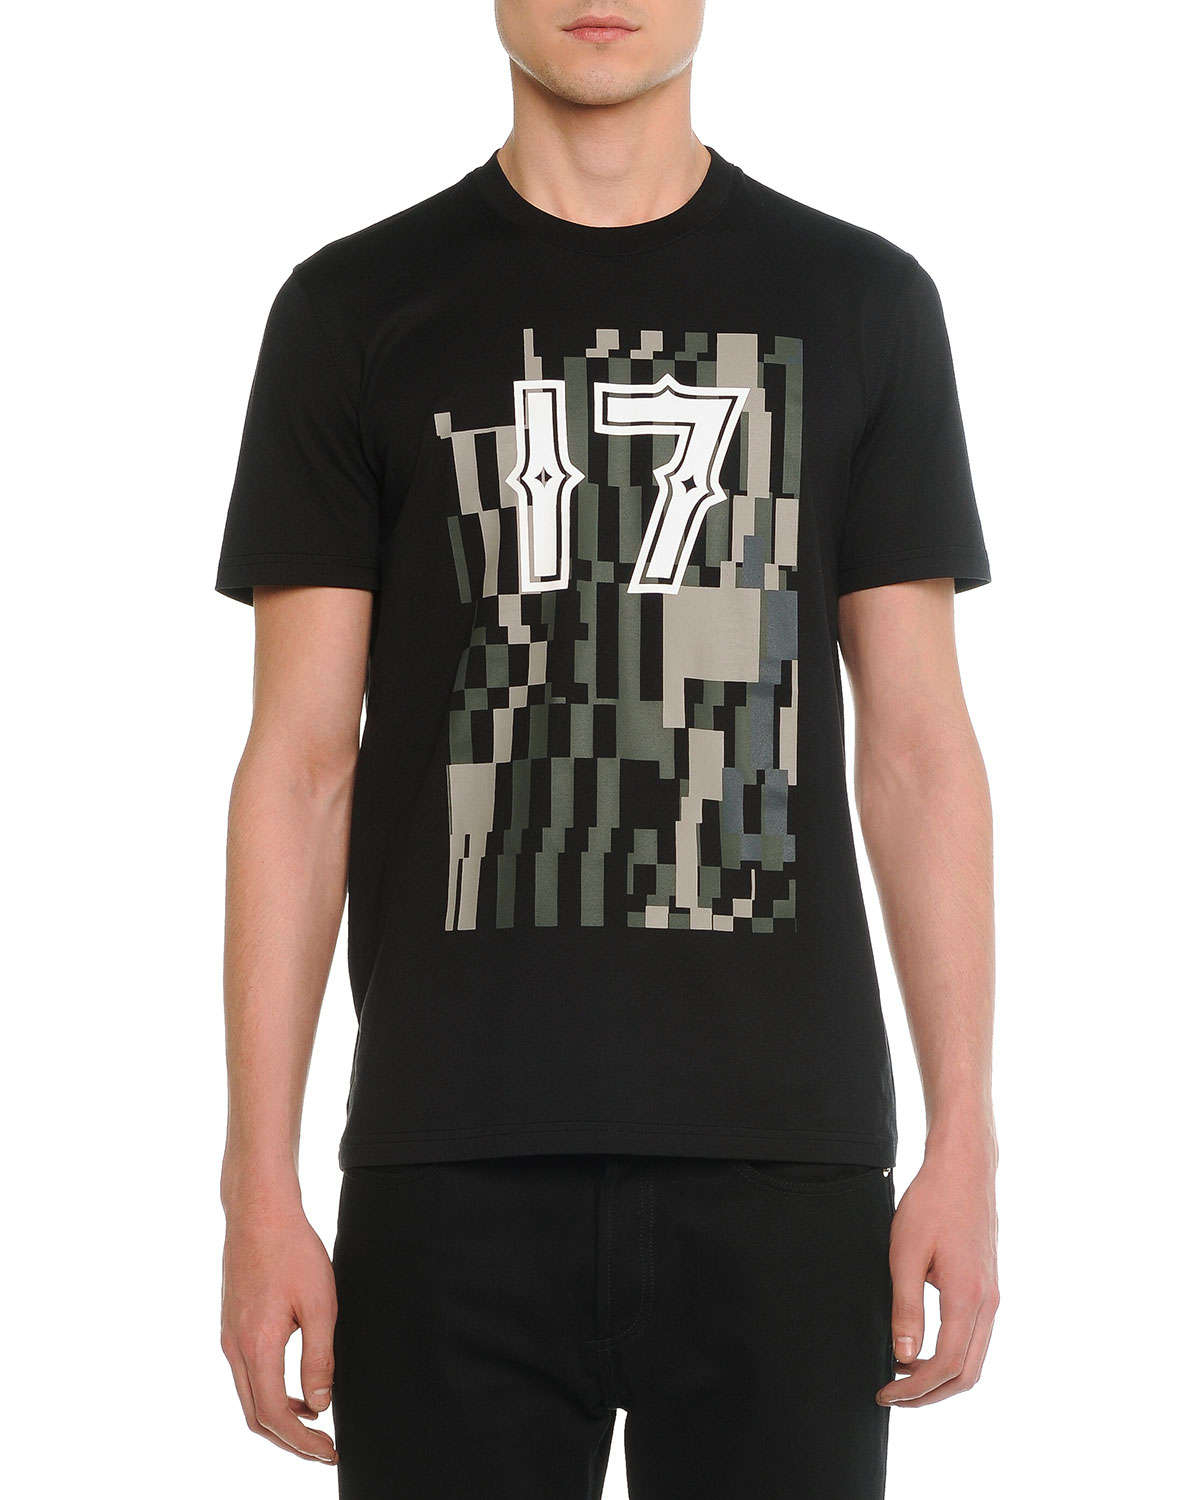 givenchy 17 camo cotton t shirt in green for men lyst. Black Bedroom Furniture Sets. Home Design Ideas